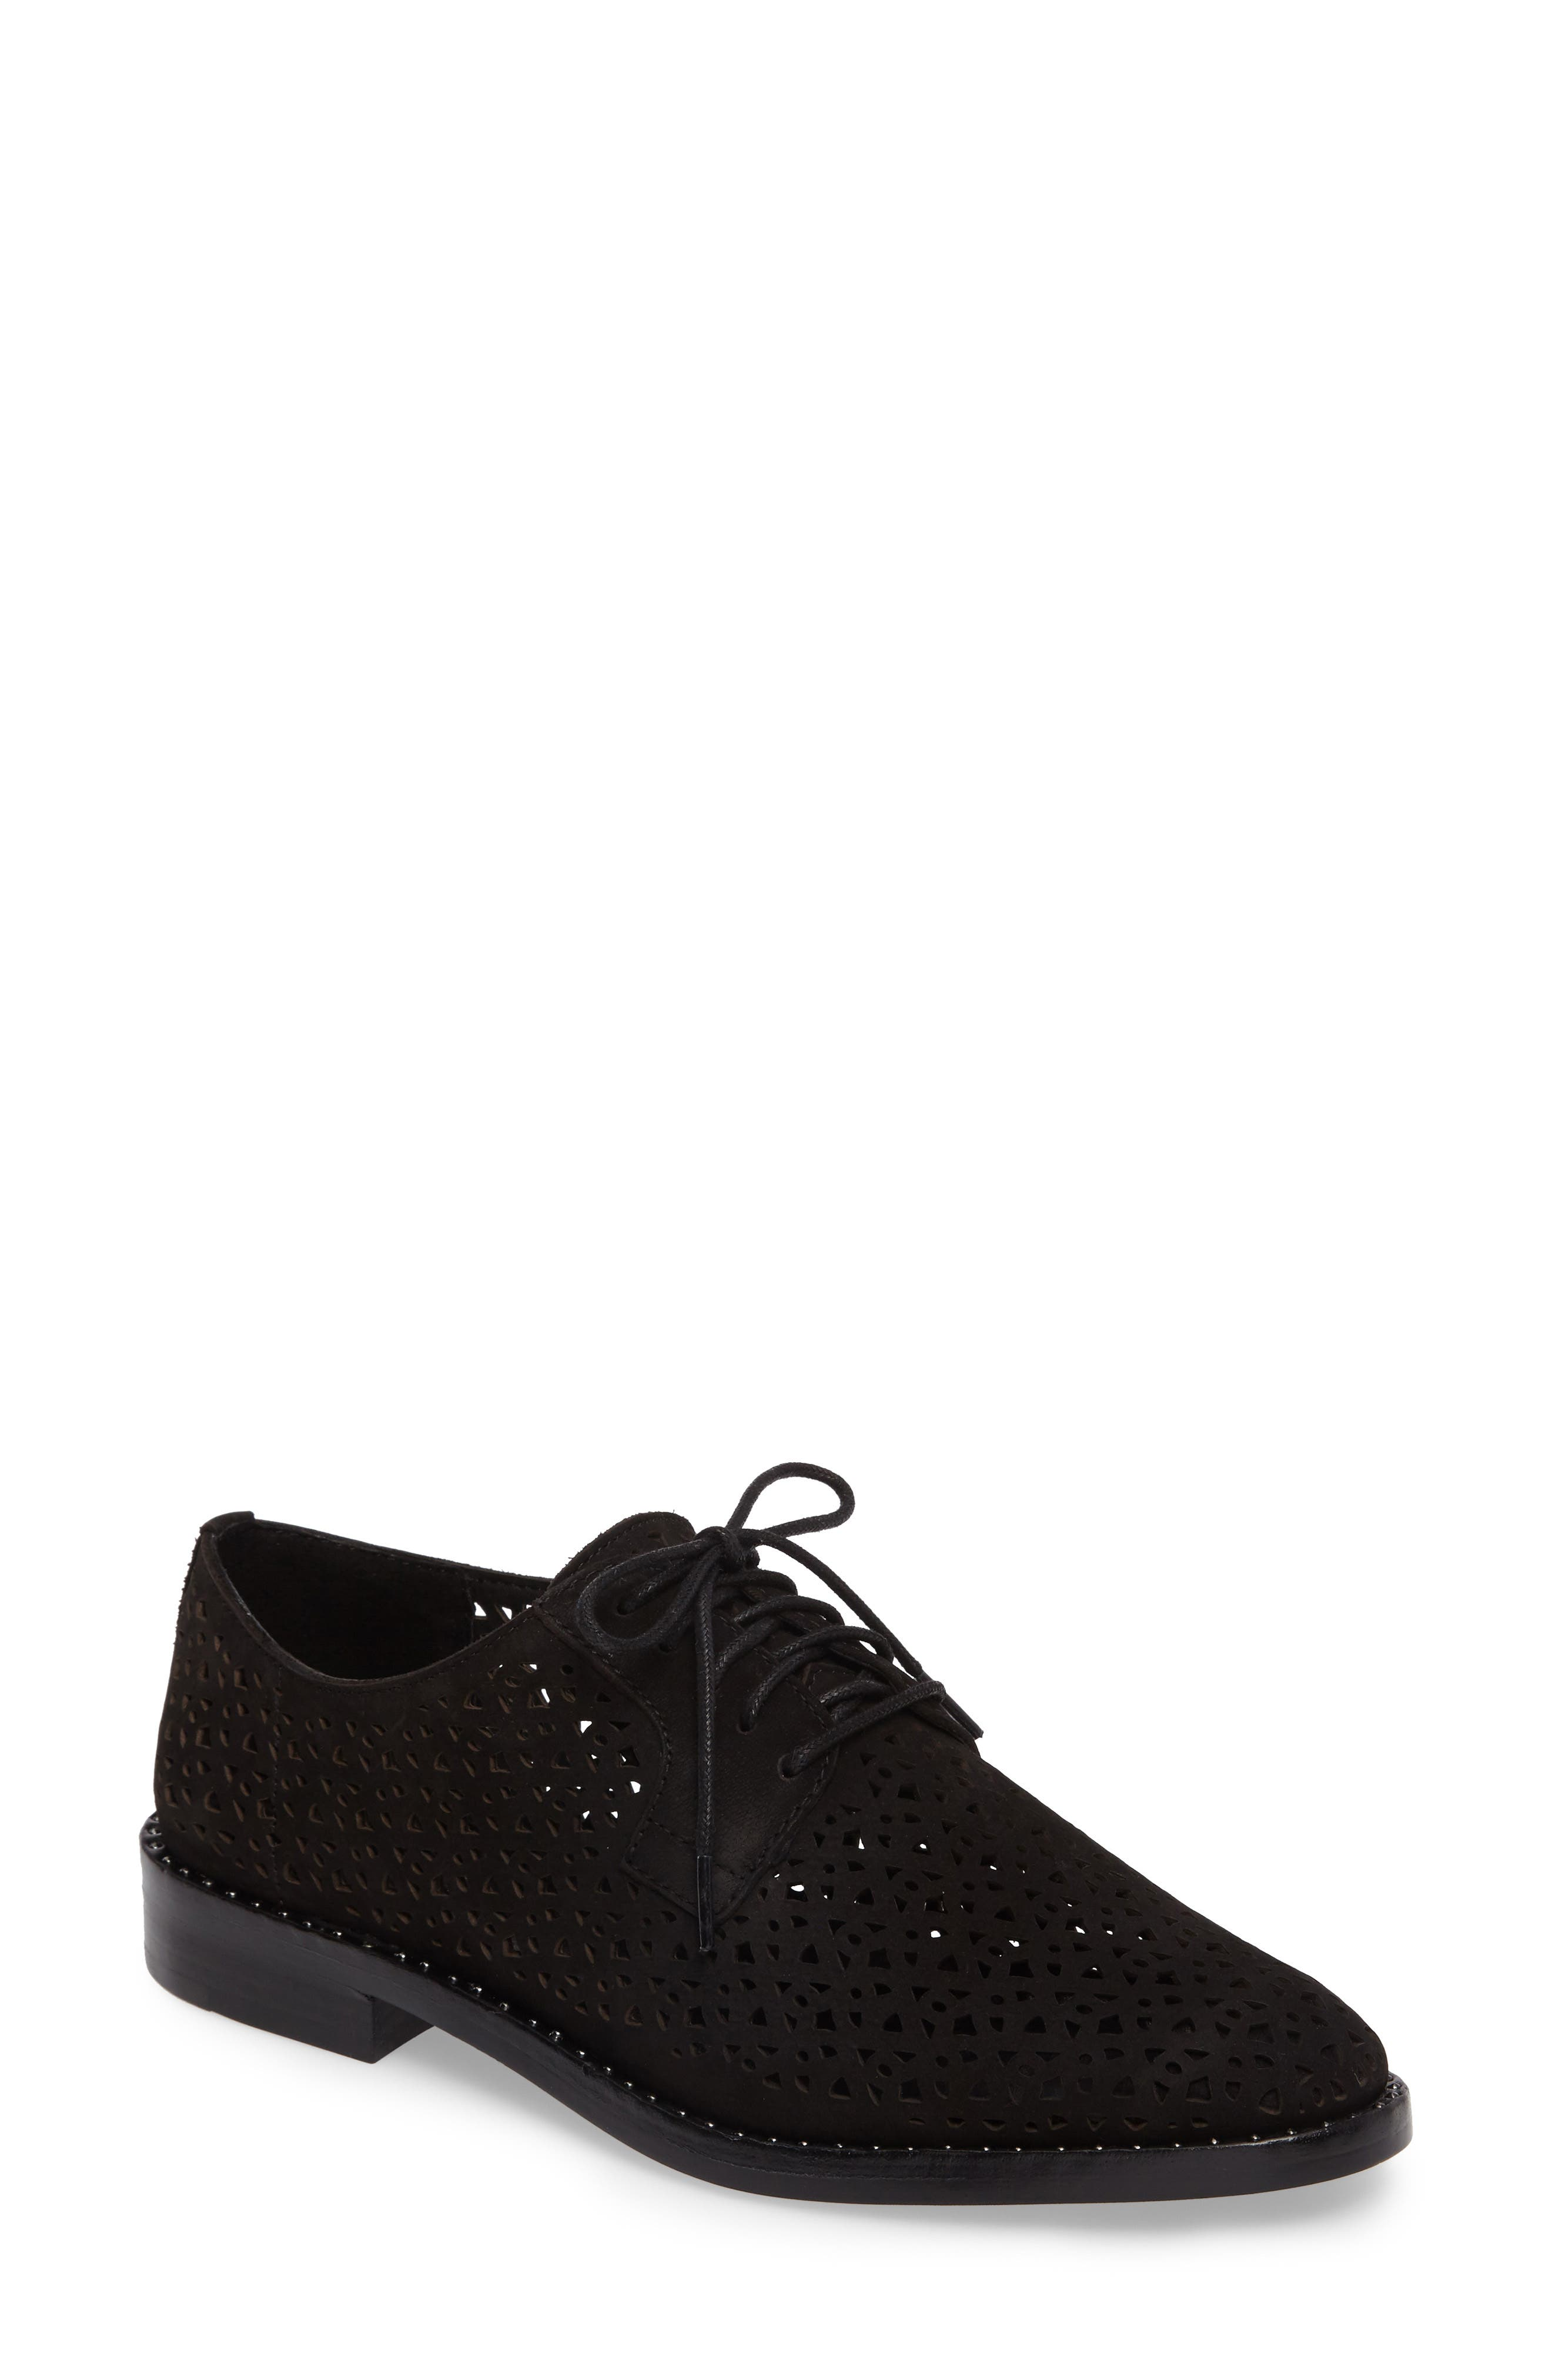 Vince Camuto Lesta Geo Perforated Oxford (Women)